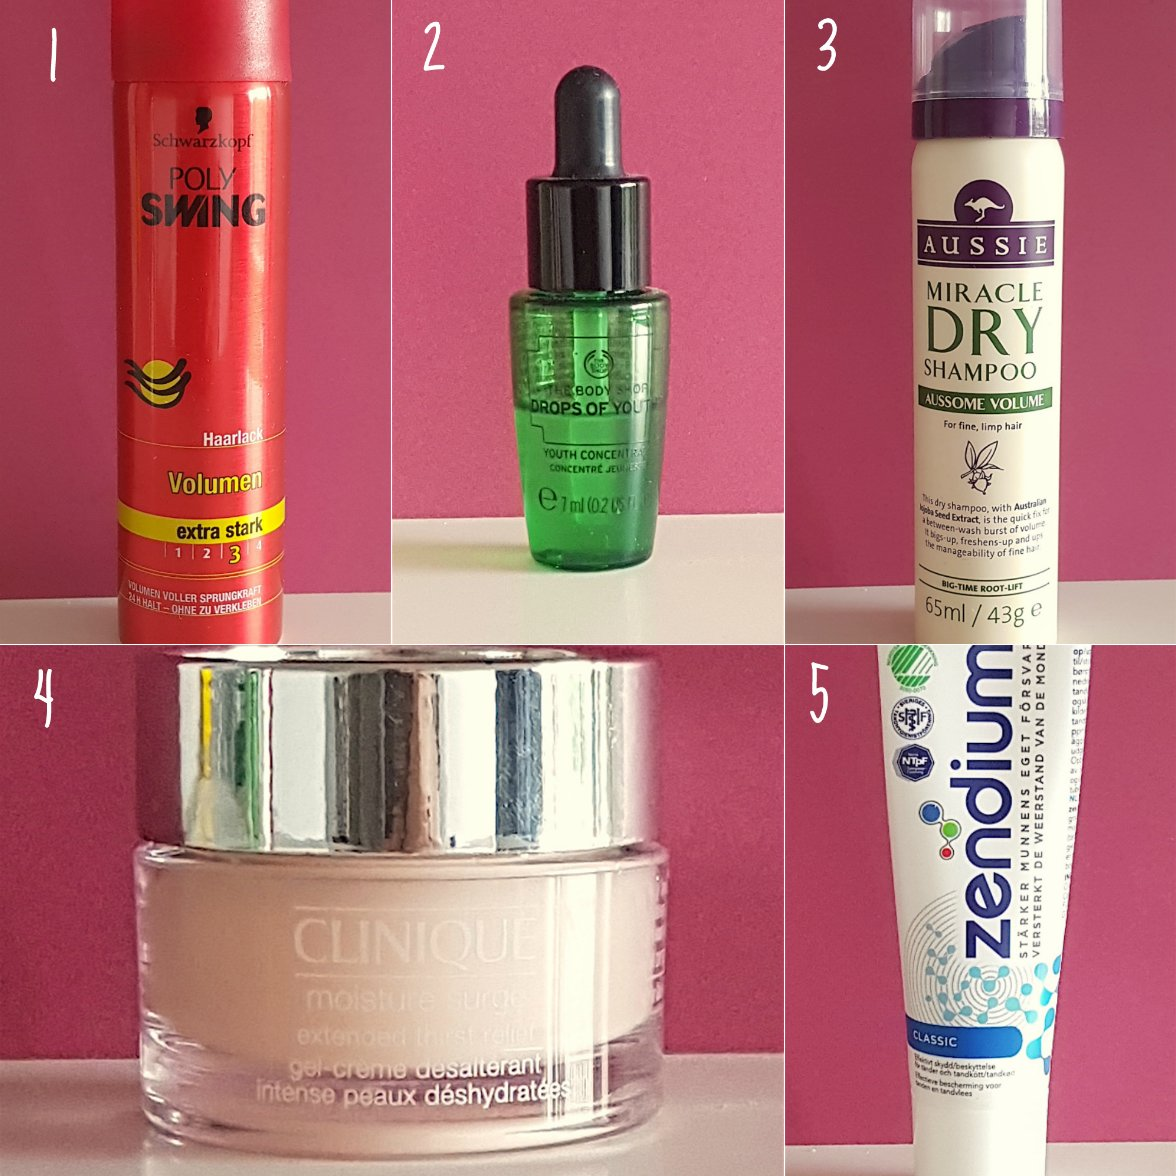 Nr. 1 Schwarzkopf hair spray, Nr 2 The Body Shop Drops of youth, Nr 3 Aussie dry shampoo, Nr 4 Clinique moisture day/night cream, Nr 5 Zendium toothpaste